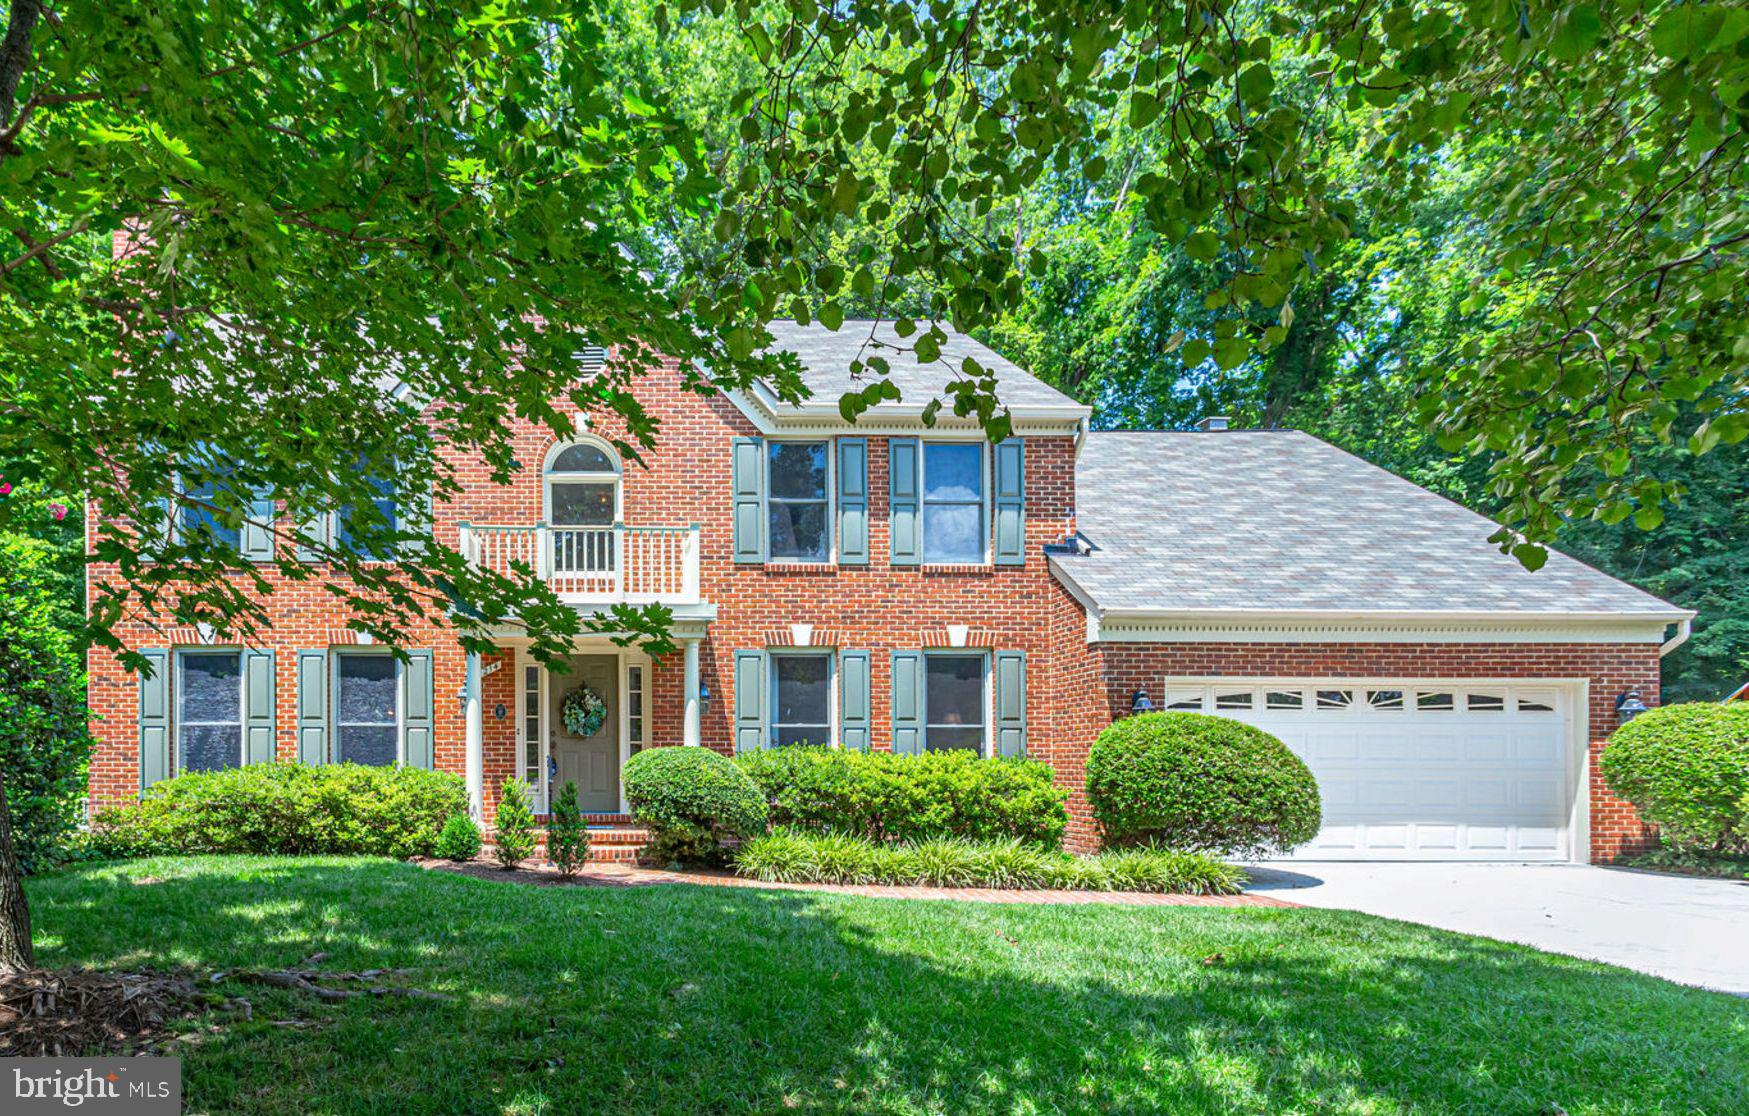 This beautiful four-bedroom brick colonial on a quiet cul-de-sac in the sought-after Collingwood Springs community will provide a serene setting for you, your family and friends. This home boasts a two-story entry with grand staircase that makes a wonderful first impression. Immediately off the entry is the den that makes for a perfect first-floor home office.~ Enjoy memorable gatherings in the generously sized living and dining rooms.~ The gleaming hardwood floors throughout are highlighted by the exquisite formal fireplace in the living room, bay window in the dining room and graced with the craftsmanship of the lovely crown molding and decorative wood elements.~ The main level's, spacious sun-drenched family room with cathedral ceiling, skylights and soaring second fireplace flows into the open gourmet eat-in kitchen. The kitchen with its center island, built-in desk area and stainless steel appliances are a chefs delight.~ French doors off the kitchen and family room flows out to the lovely deck.~ The ~park-like~ setting will afford you outdoor entertaining or a relaxing environment for casual conversation or space to read that great book. The stunning master suite also has a wonderful cathedral ceiling with adjoining ~spa-like~ bathroom that provides you with your own private sanctuary. The lower level is the perfect place to enjoy movie night or a friendly game of ping pong in the large family room.~ In addition, there is the third full bathroom and so much storage space. Just minutes to the picturesque George Washington Parkway between Mount Vernon and Old Town Alexandria. George Washington Memorial Parkway and nearby Fort Hunt Park are maintained by the National Park Service and preserve habitat for local wildlife. The parkway and its associated miles of trails along the Potomac River provide a scenic place to play and rest in the busy Washington, DC metropolitan area. Minutes from Old Town Alexandria, Reagan National Airport, Metro Stations, the future Nati